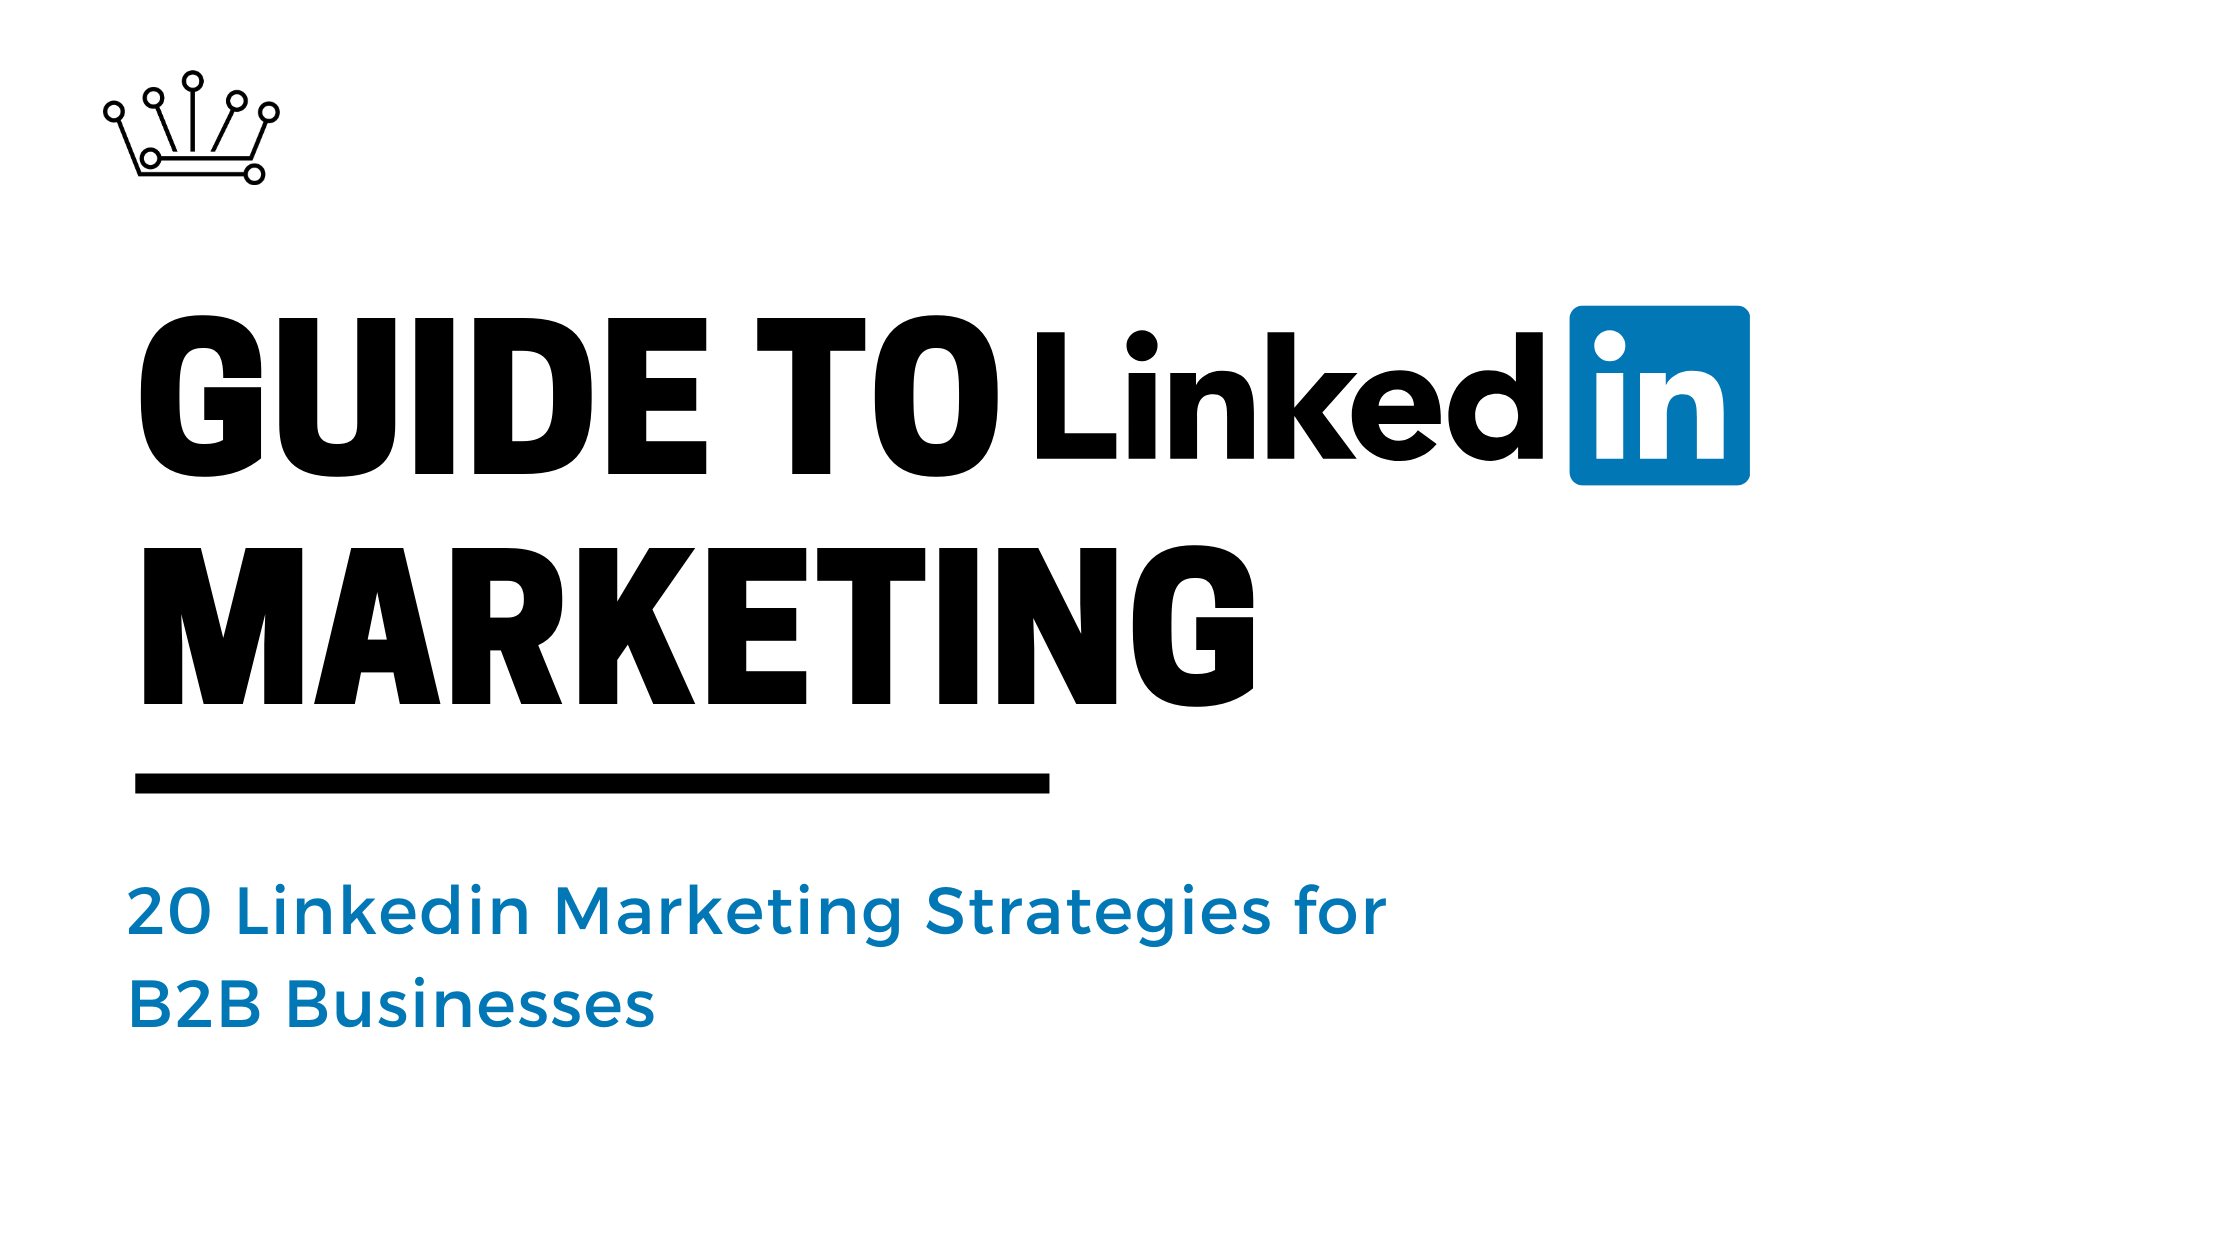 Guide to Linkedin Marketing - 20 Linkedin Marketing Strategies for B2B Businesses